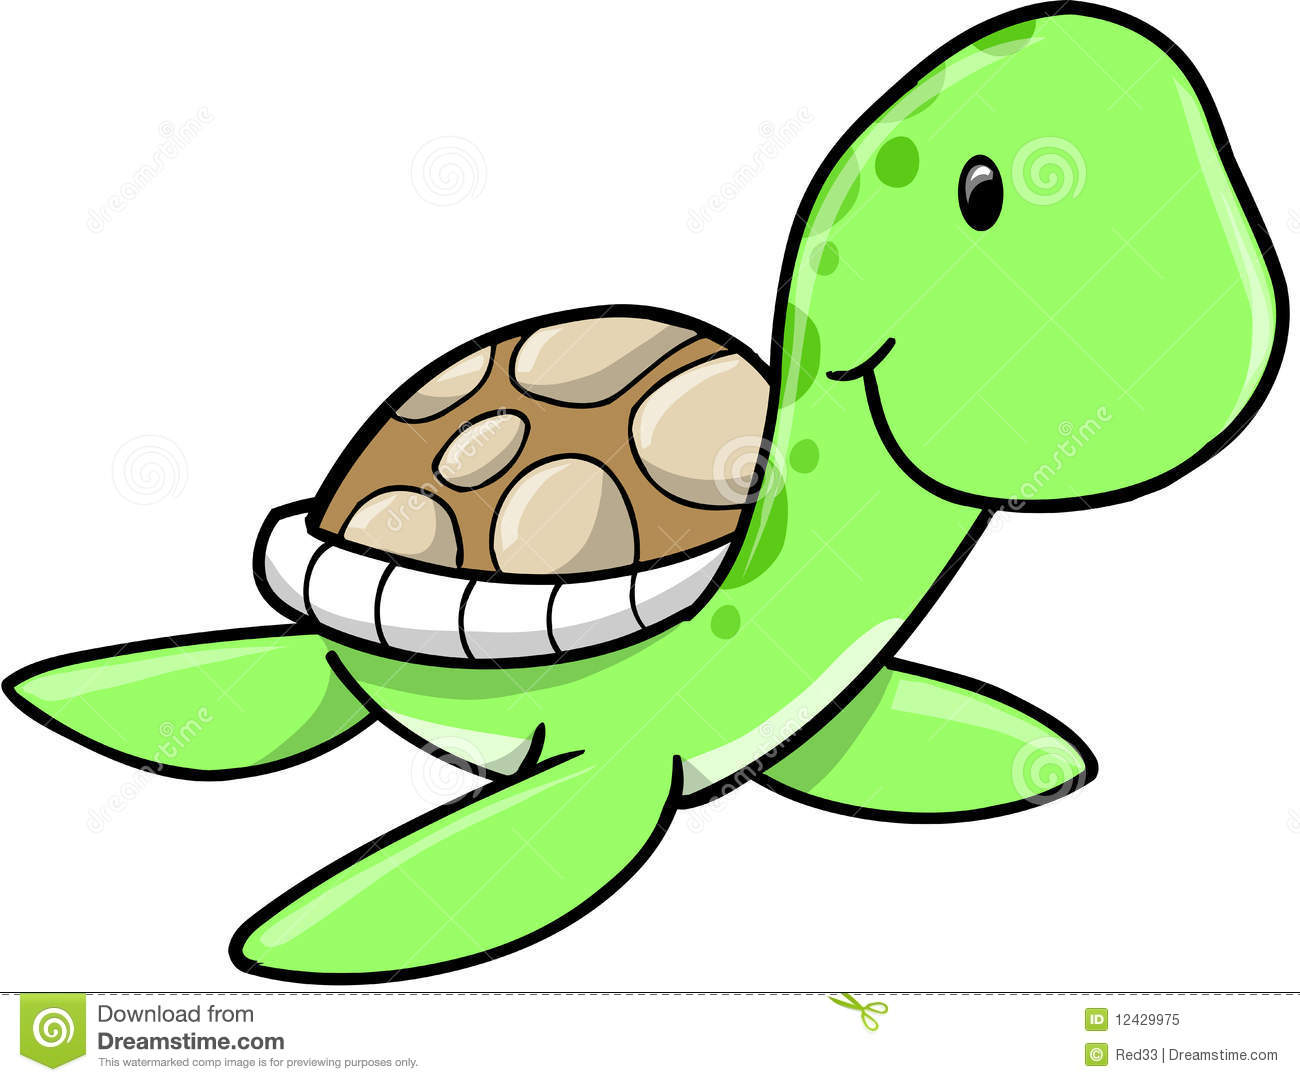 Clipart Sea Turtle Clipart - Sea Turtle Clipart